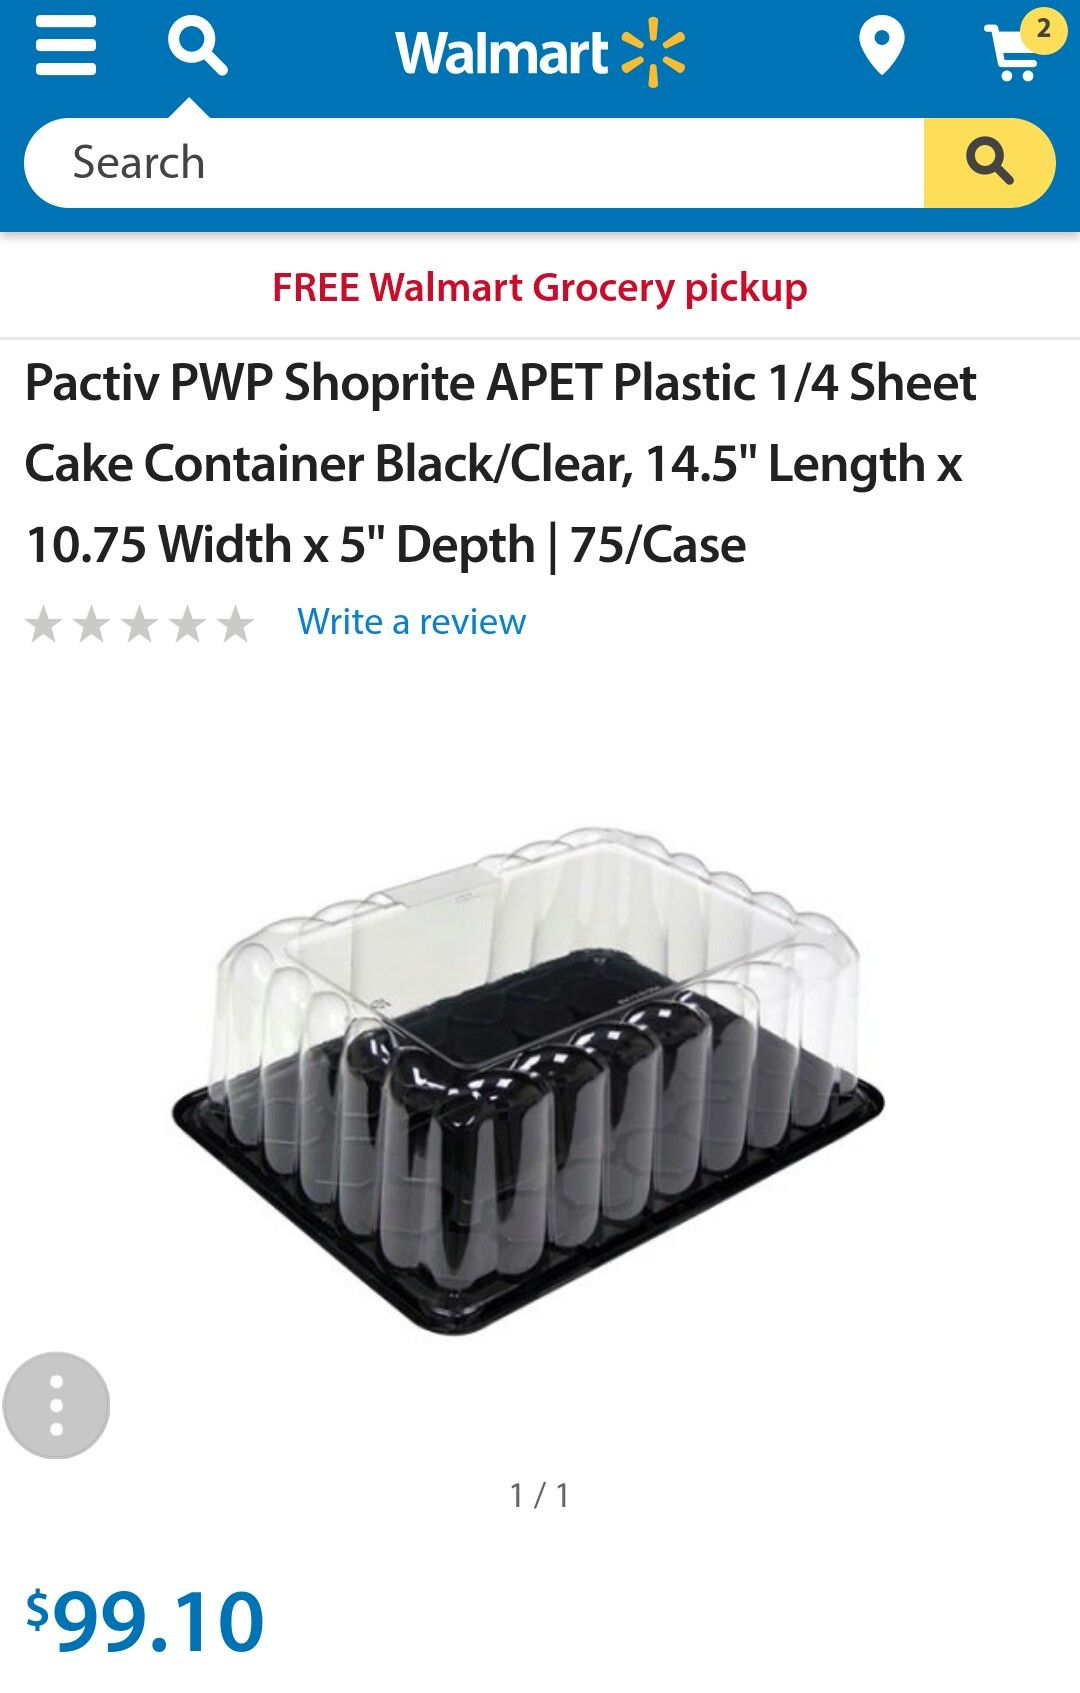 Pactiv Pwp Shoprite Apet Plastic 1 4 Sheet Cake Container Black Clear 14 5 Length X 10 75 Width X 5 Depth 75 Case Sheet Cake Shoprite 10 Things